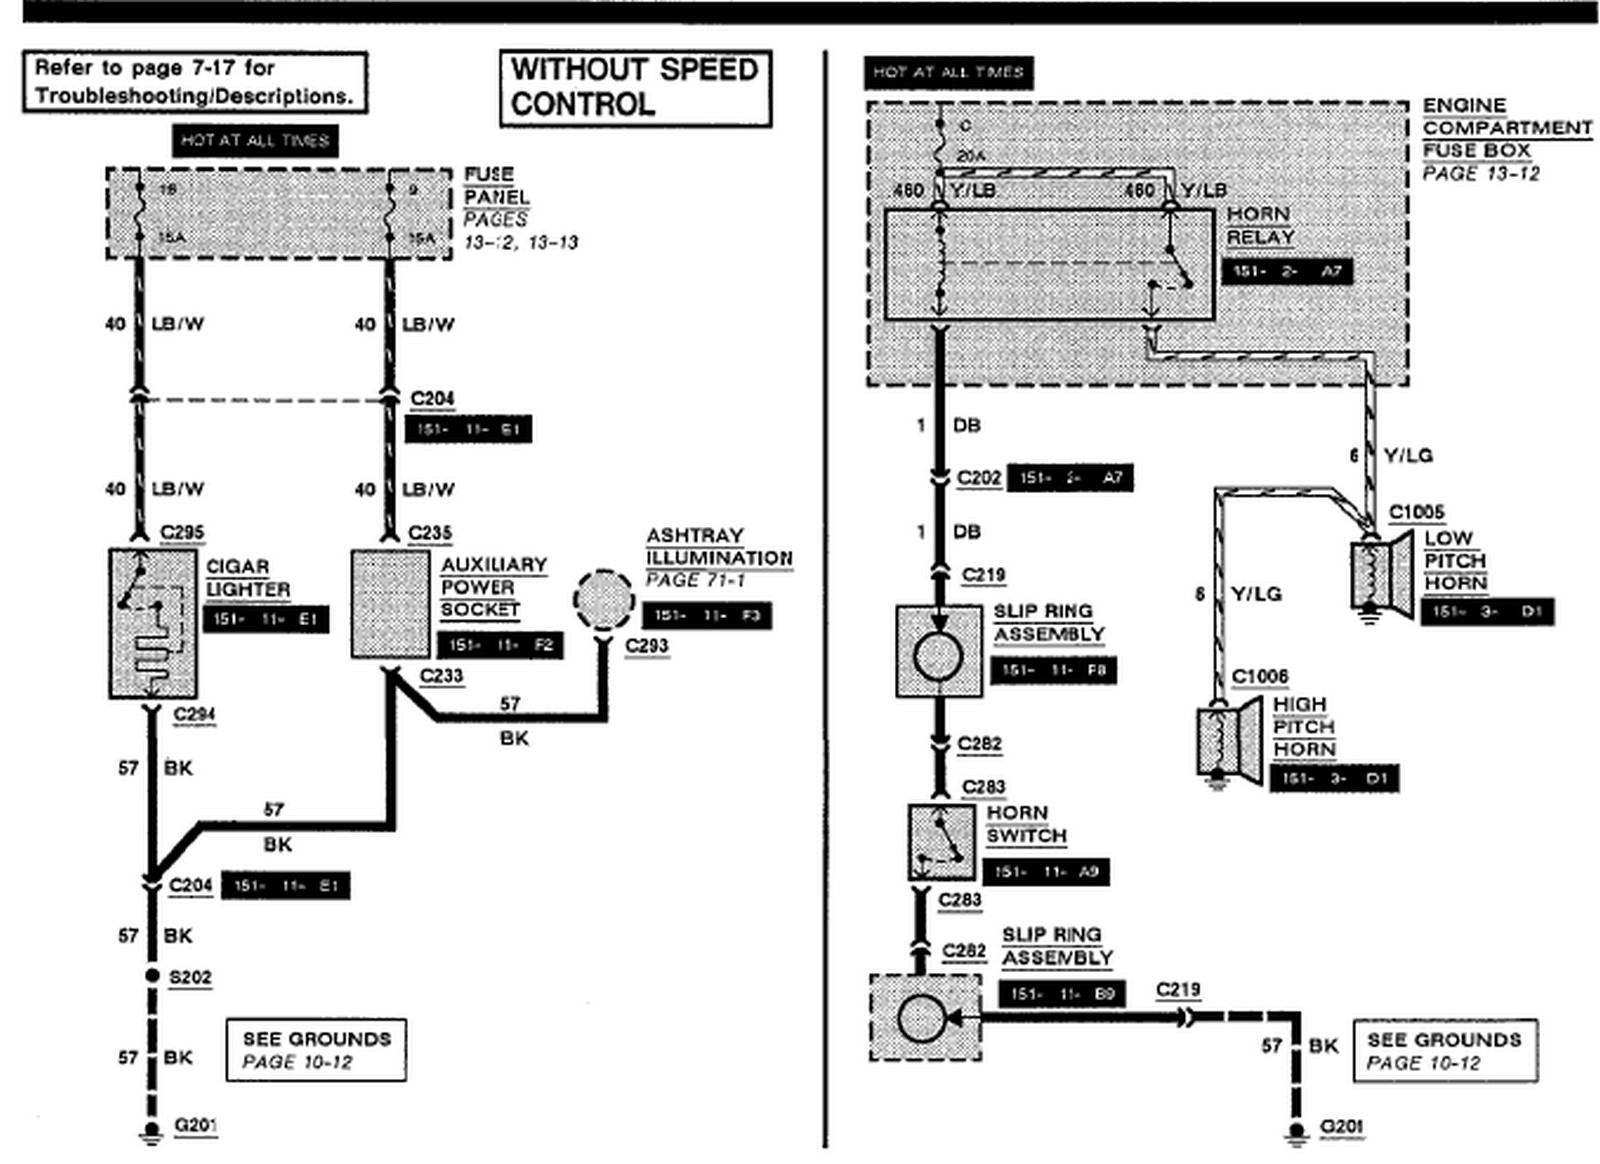 1992 F150 Wiring Diagram Great Design Of 99 F350 Dome Lamp 2004 Ford F 150 Transmission 43 Light